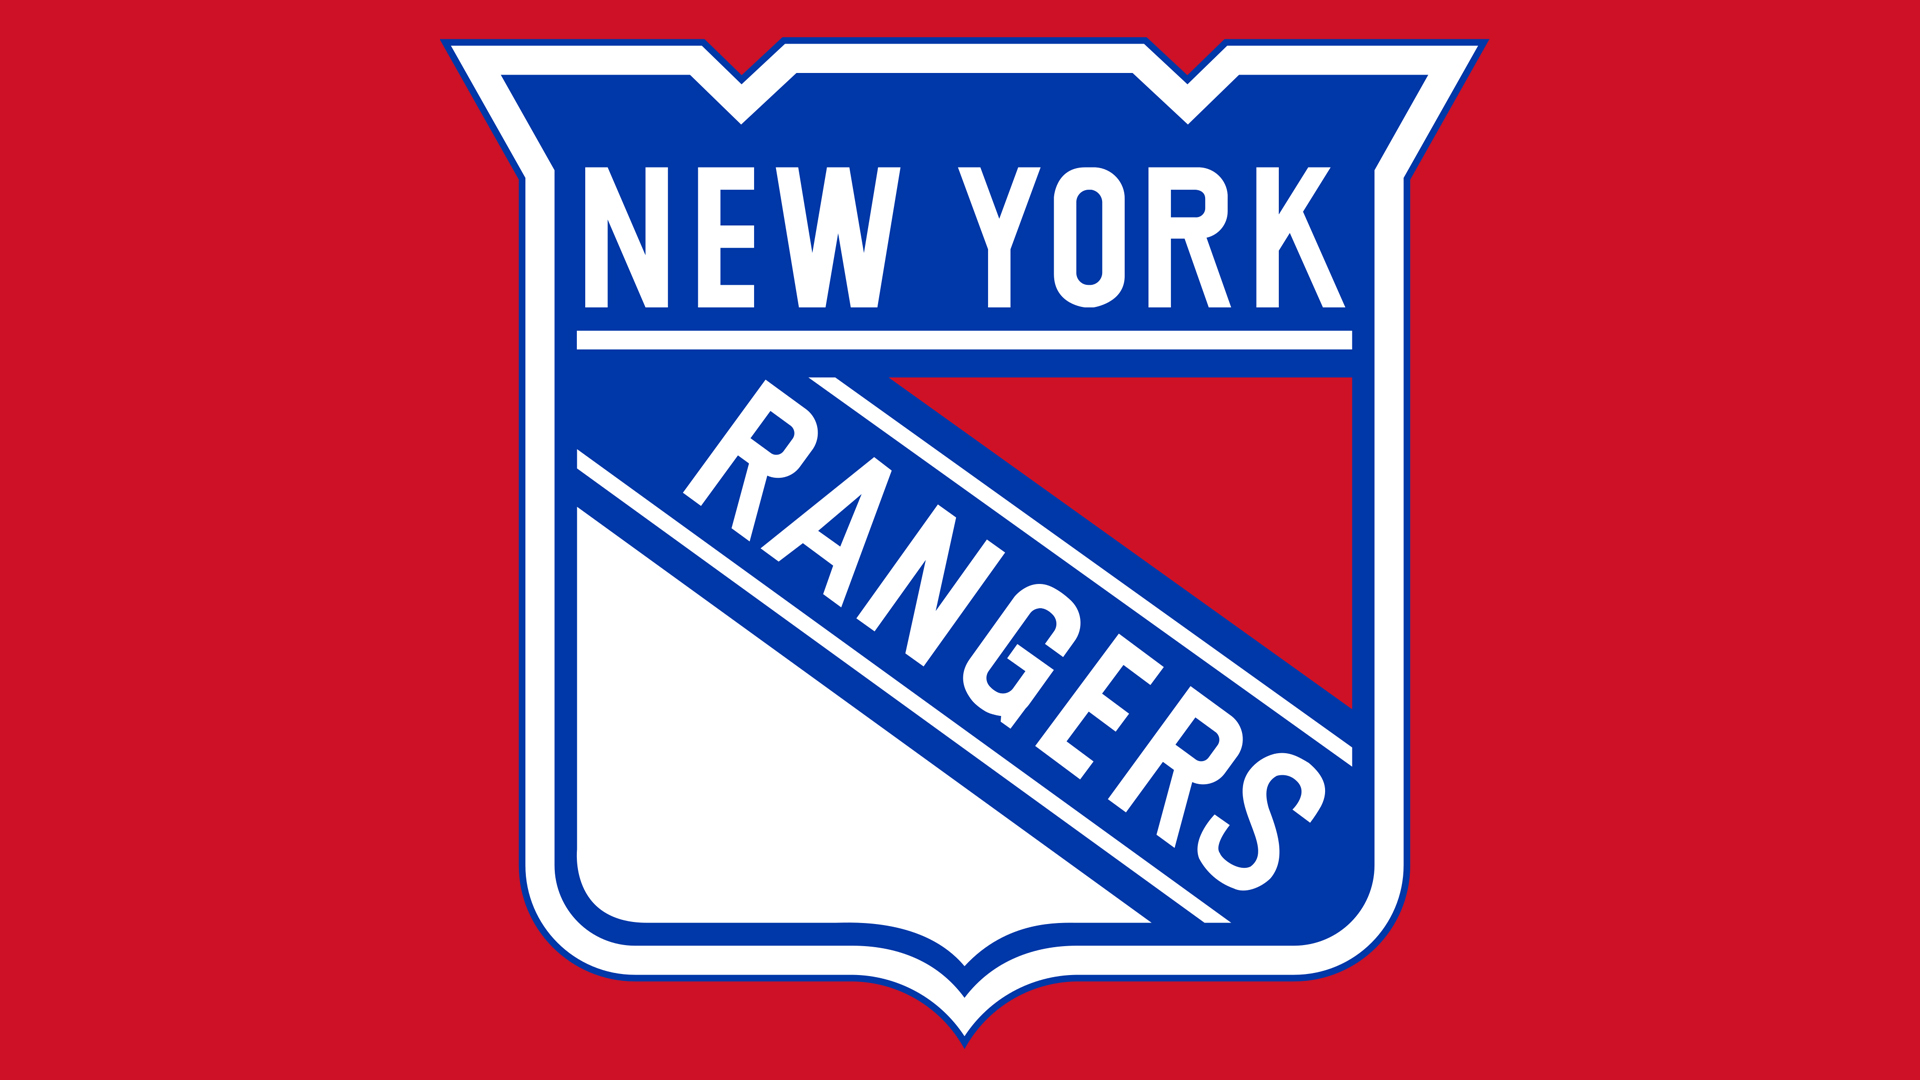 Meaning New York Rangers logo and symbol.